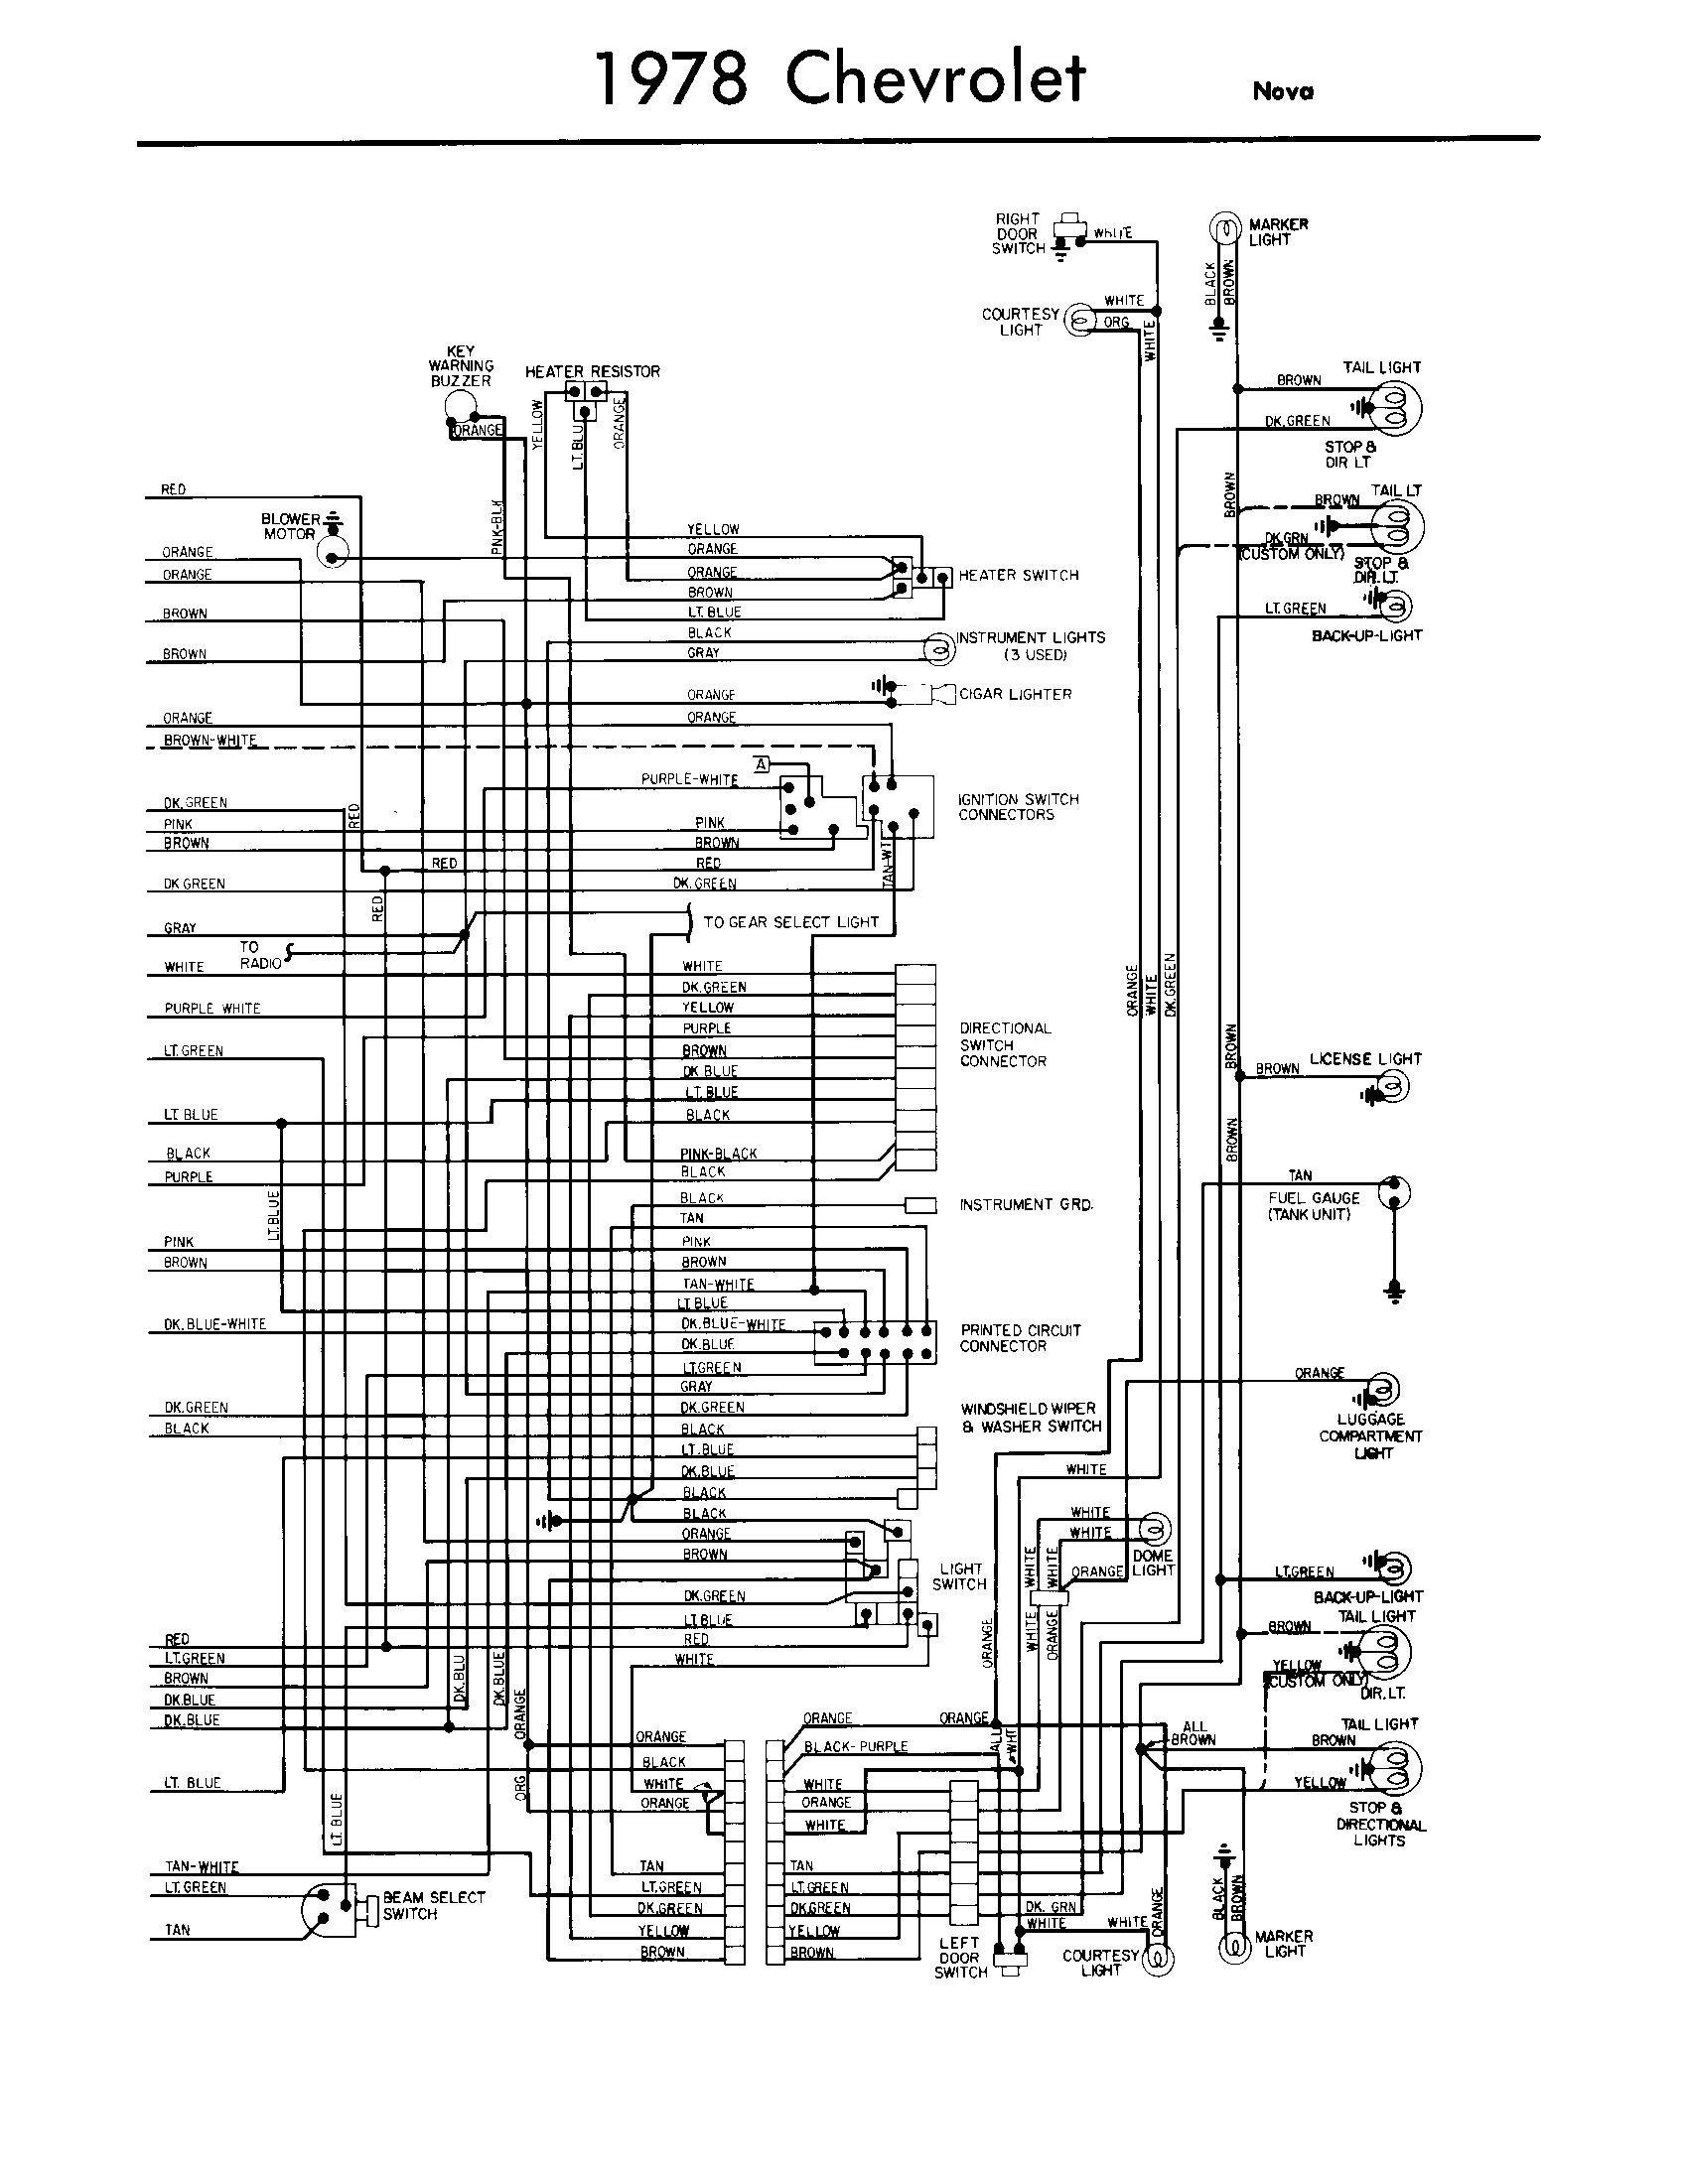 wiring diagram for 1976 chevy monza fuel pump wiring diagramwiring diagram for 1976 chevy monza fuel pump wiring diagram 1978 chevrolet monza monza vega wiring